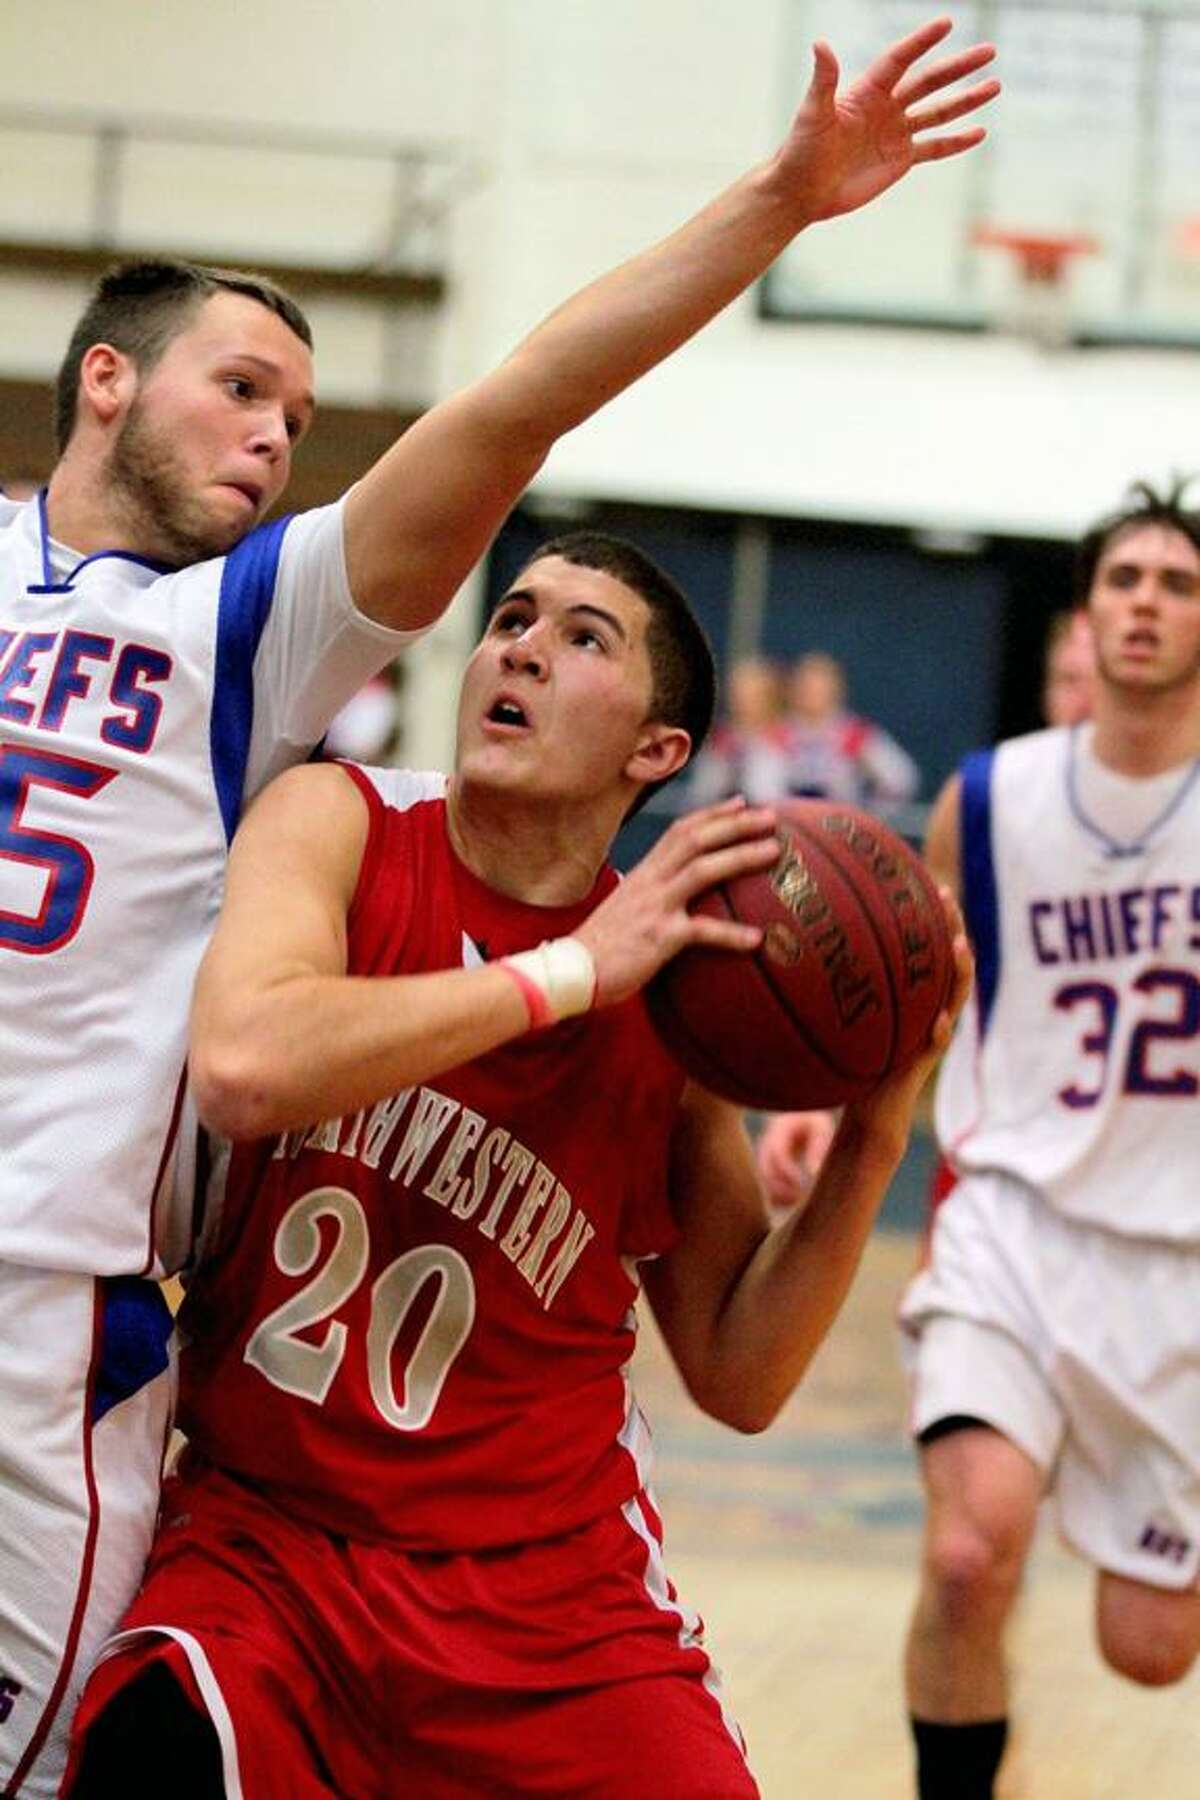 Marianne Killackey/Special to the Register Citizen Northwestern's Connor Guiheen (20) looks to go for a layup as Neil Mendoza (left, 25) of Nonnewaug attempts to block.